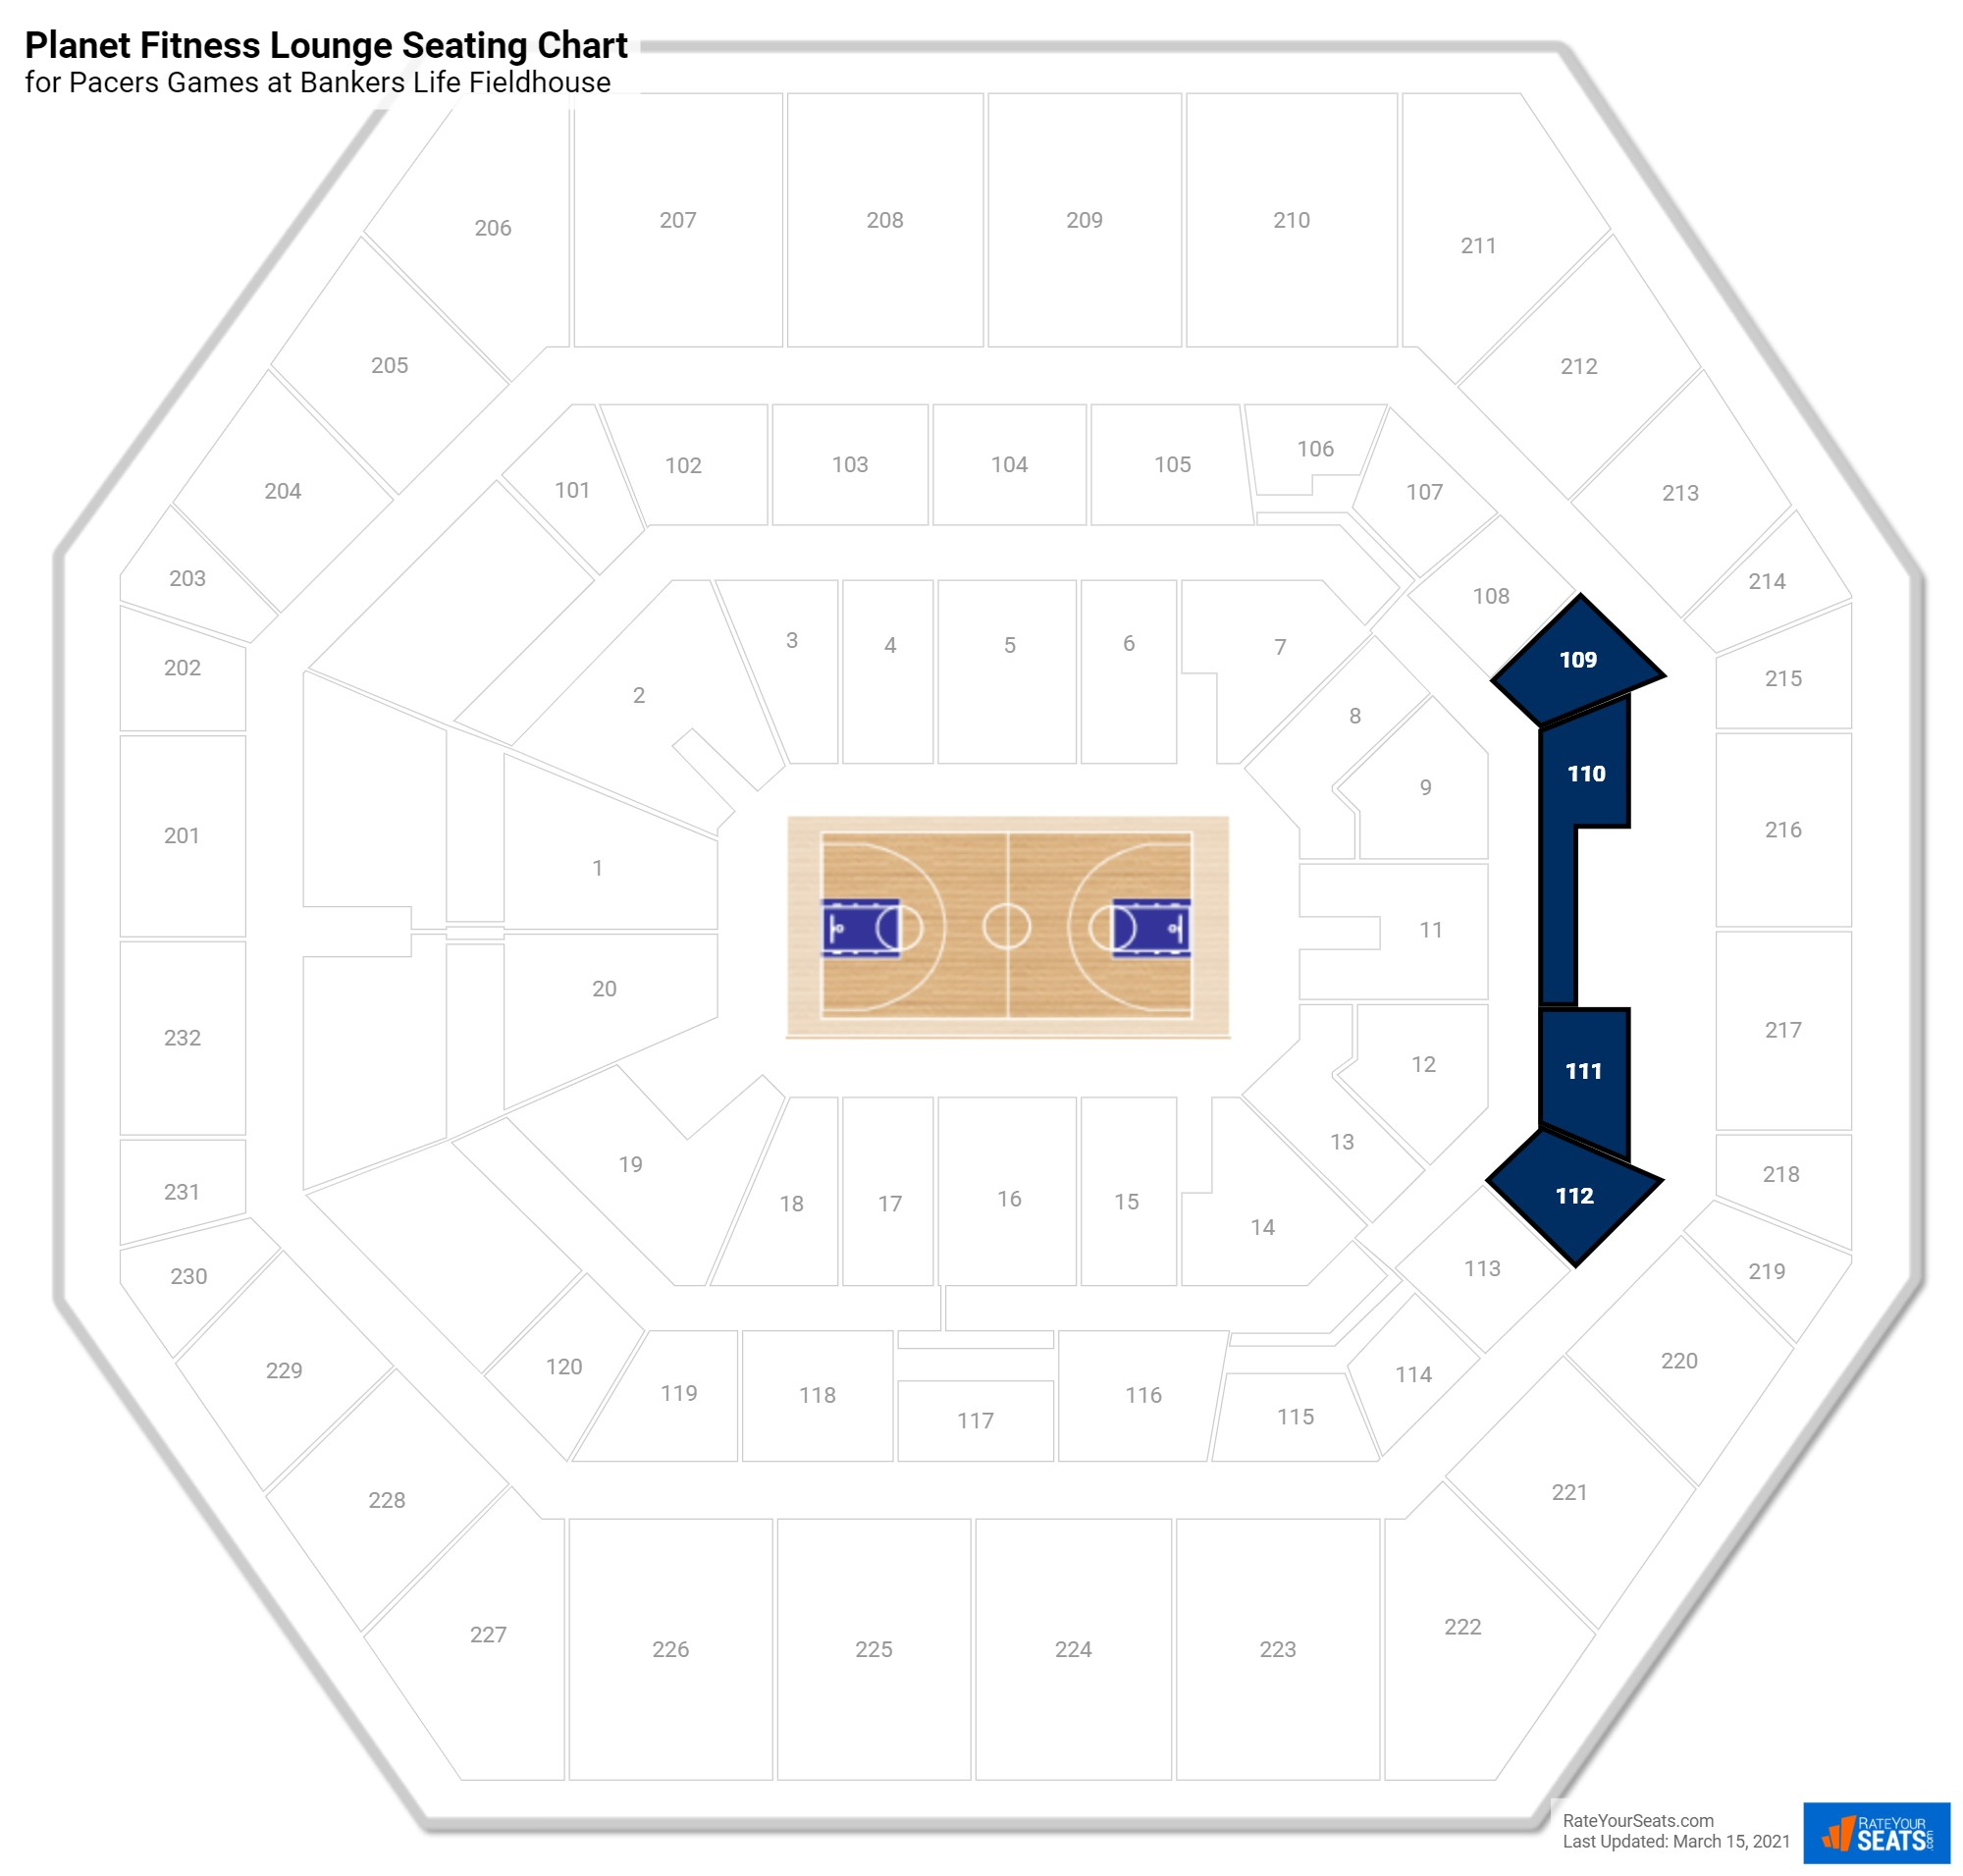 Bankers Life Fieldhouse Club Level Baseline seating chart